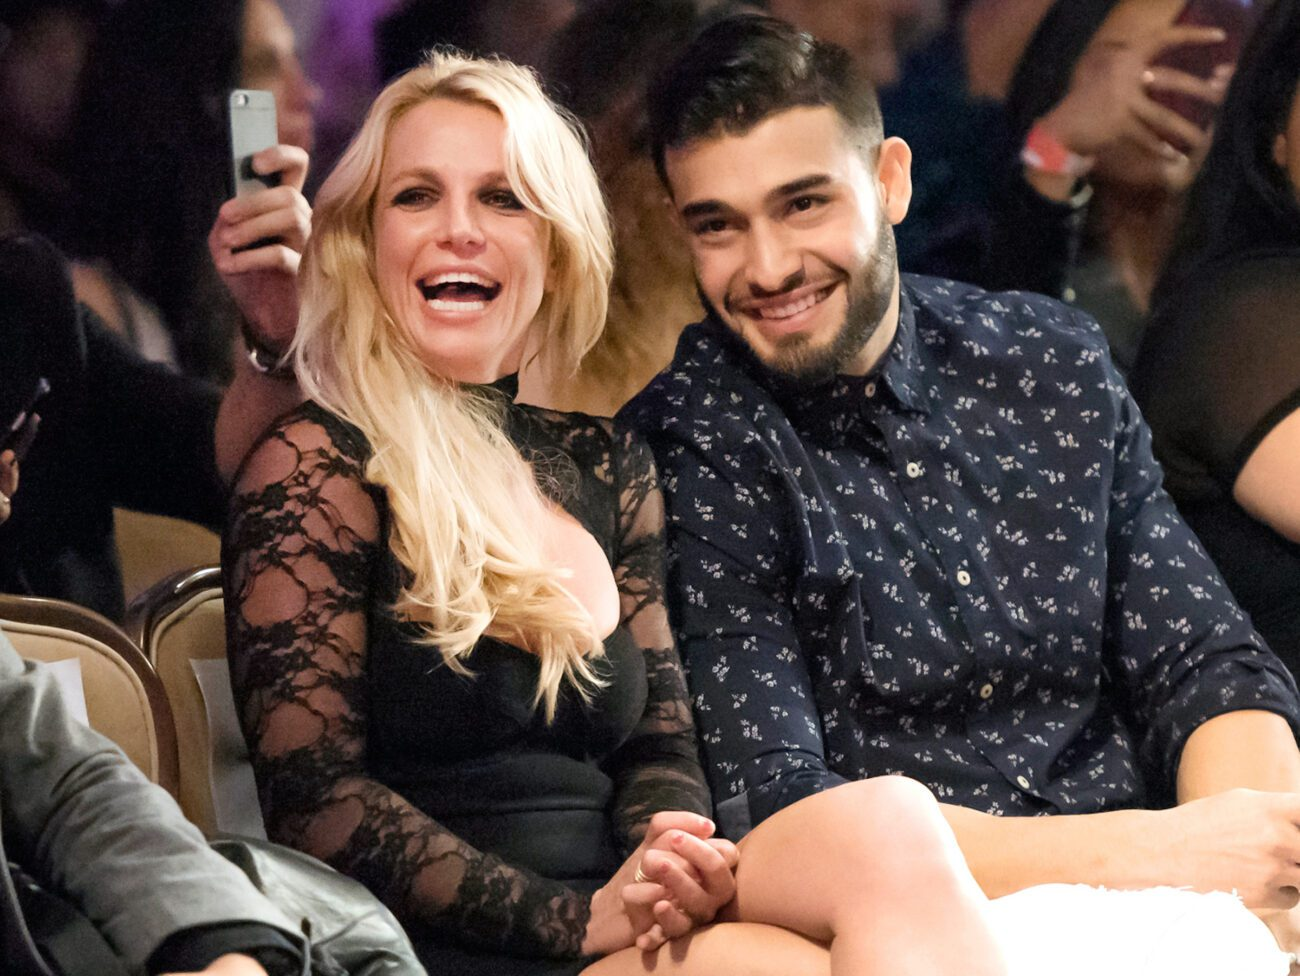 Britney Spears's boyfriend, Sam Asghari just popped the question! Will Jamie Spears get an invite to the wedding?